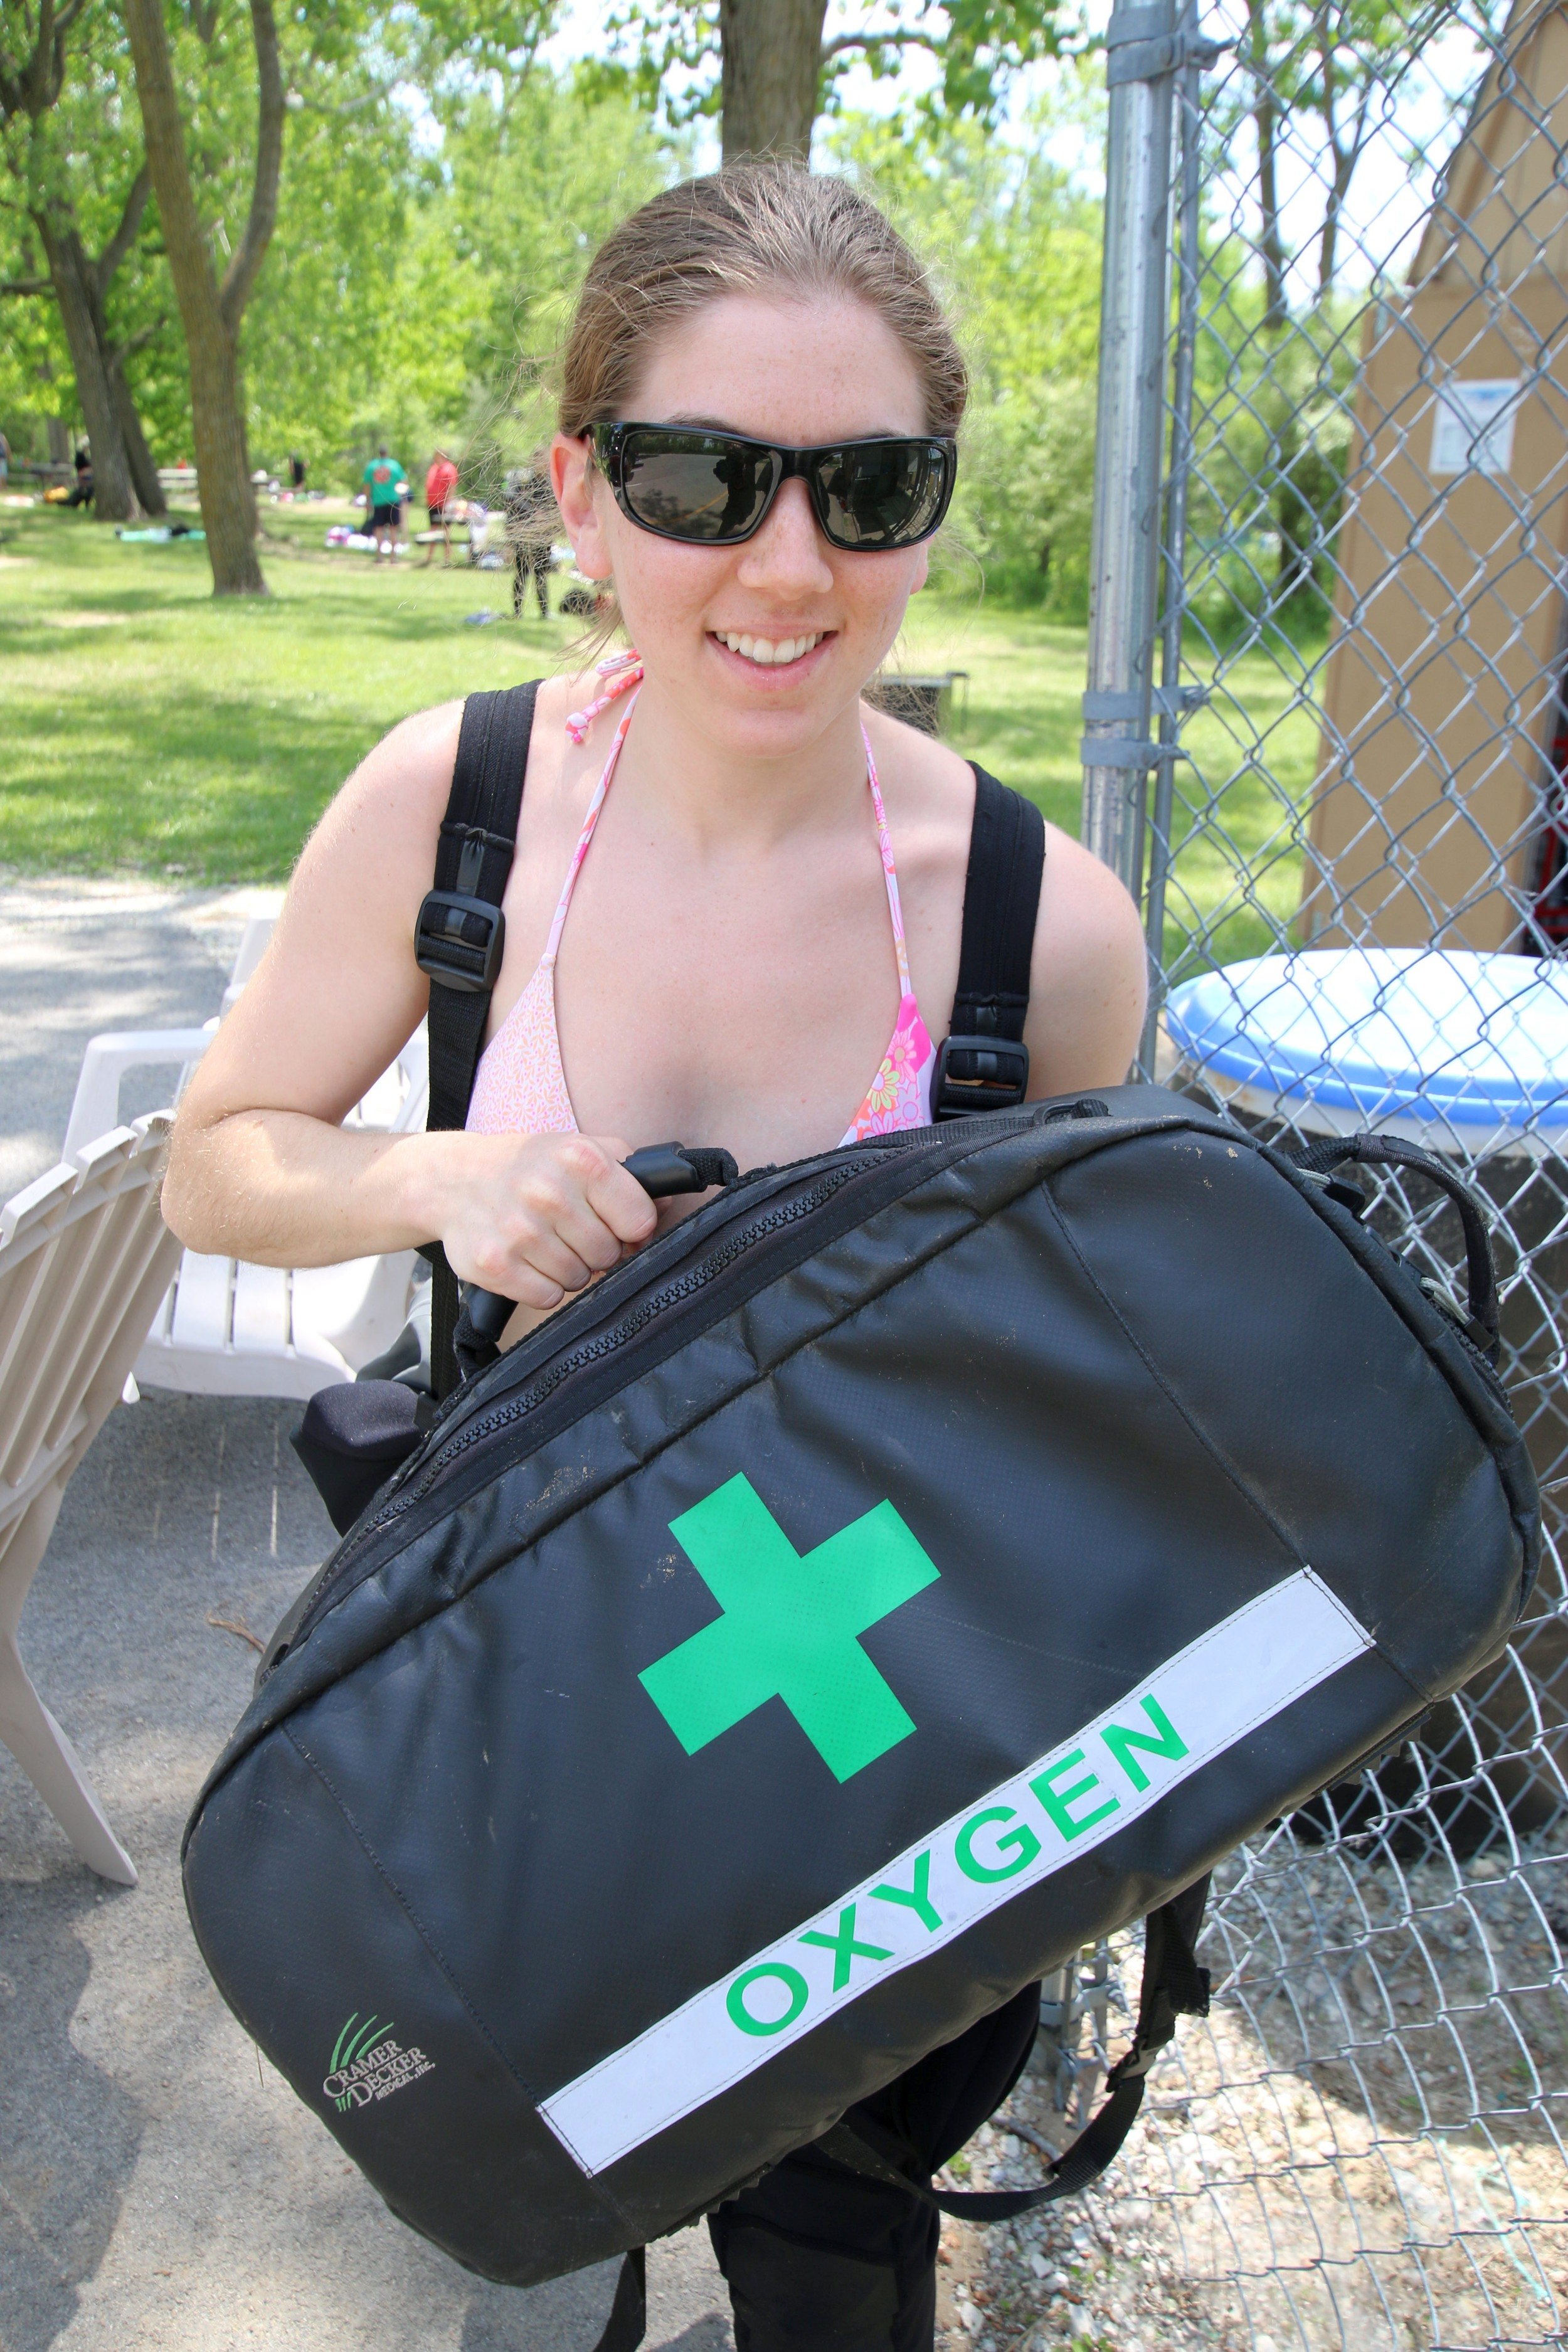 Meghan with the oxygen kit ready to save the patient